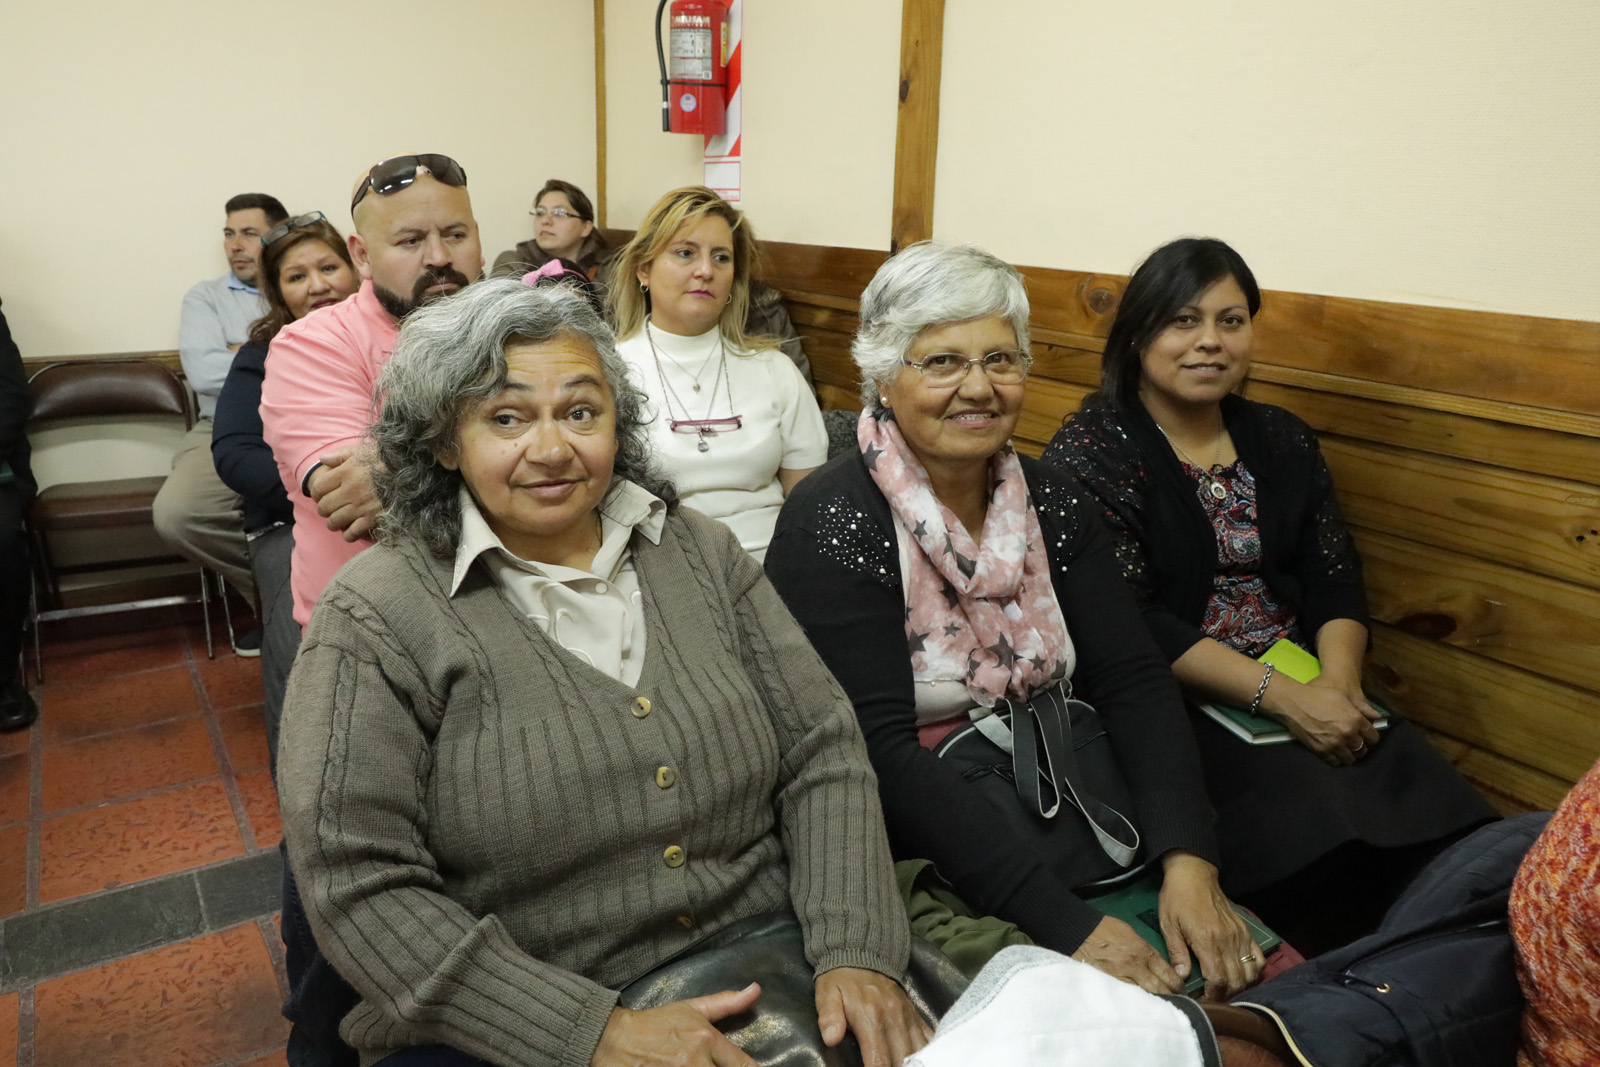 Members of the El Calafate Branch in Argentina gather for a meeting with Elder Renlund on Feb. 20, 2019.